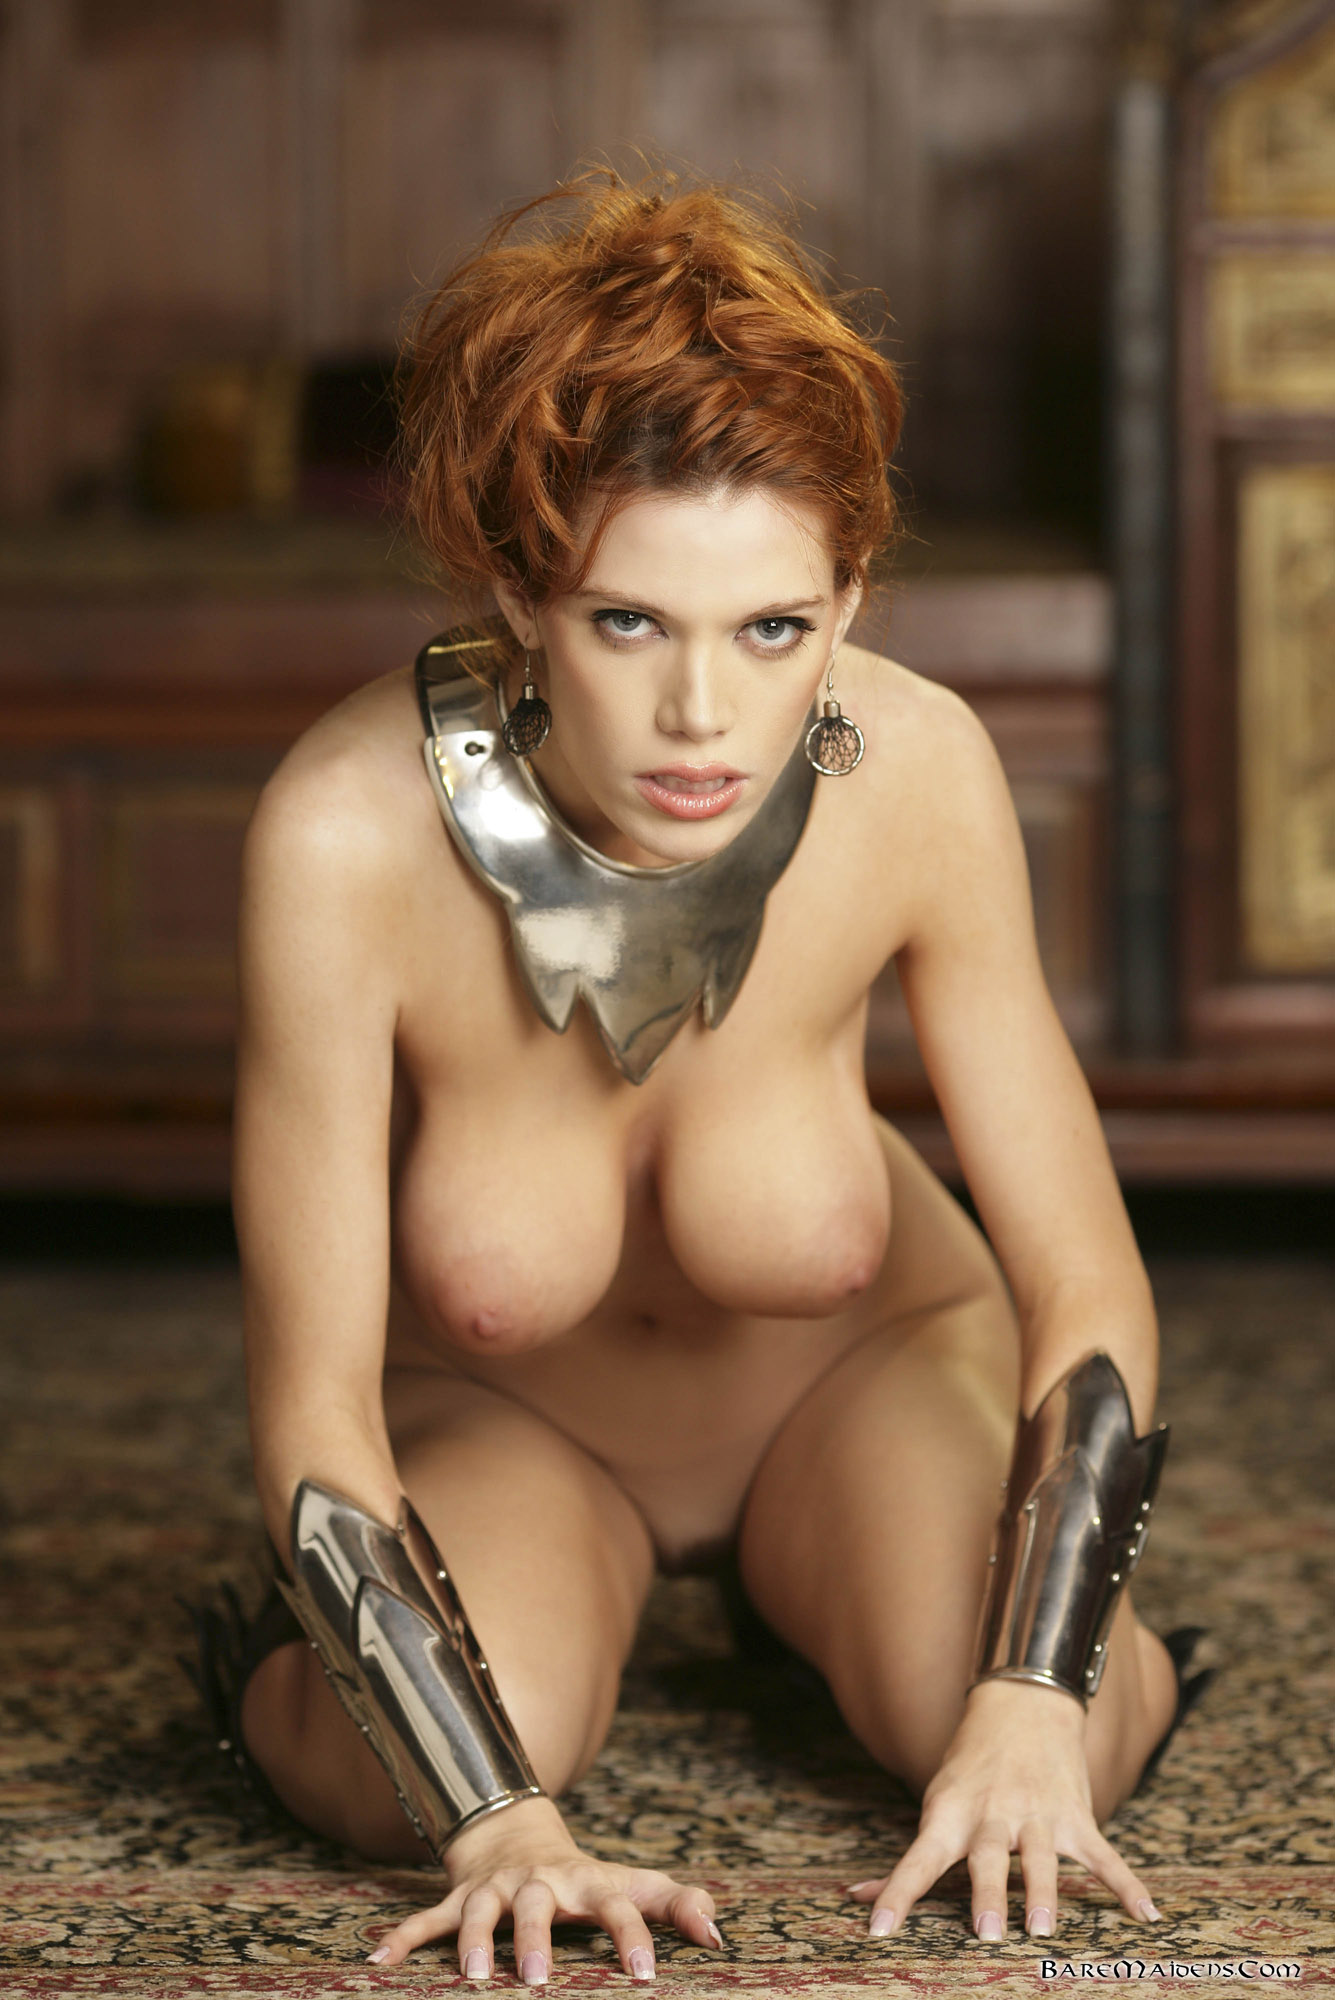 Sexy redhead bare maidens queen